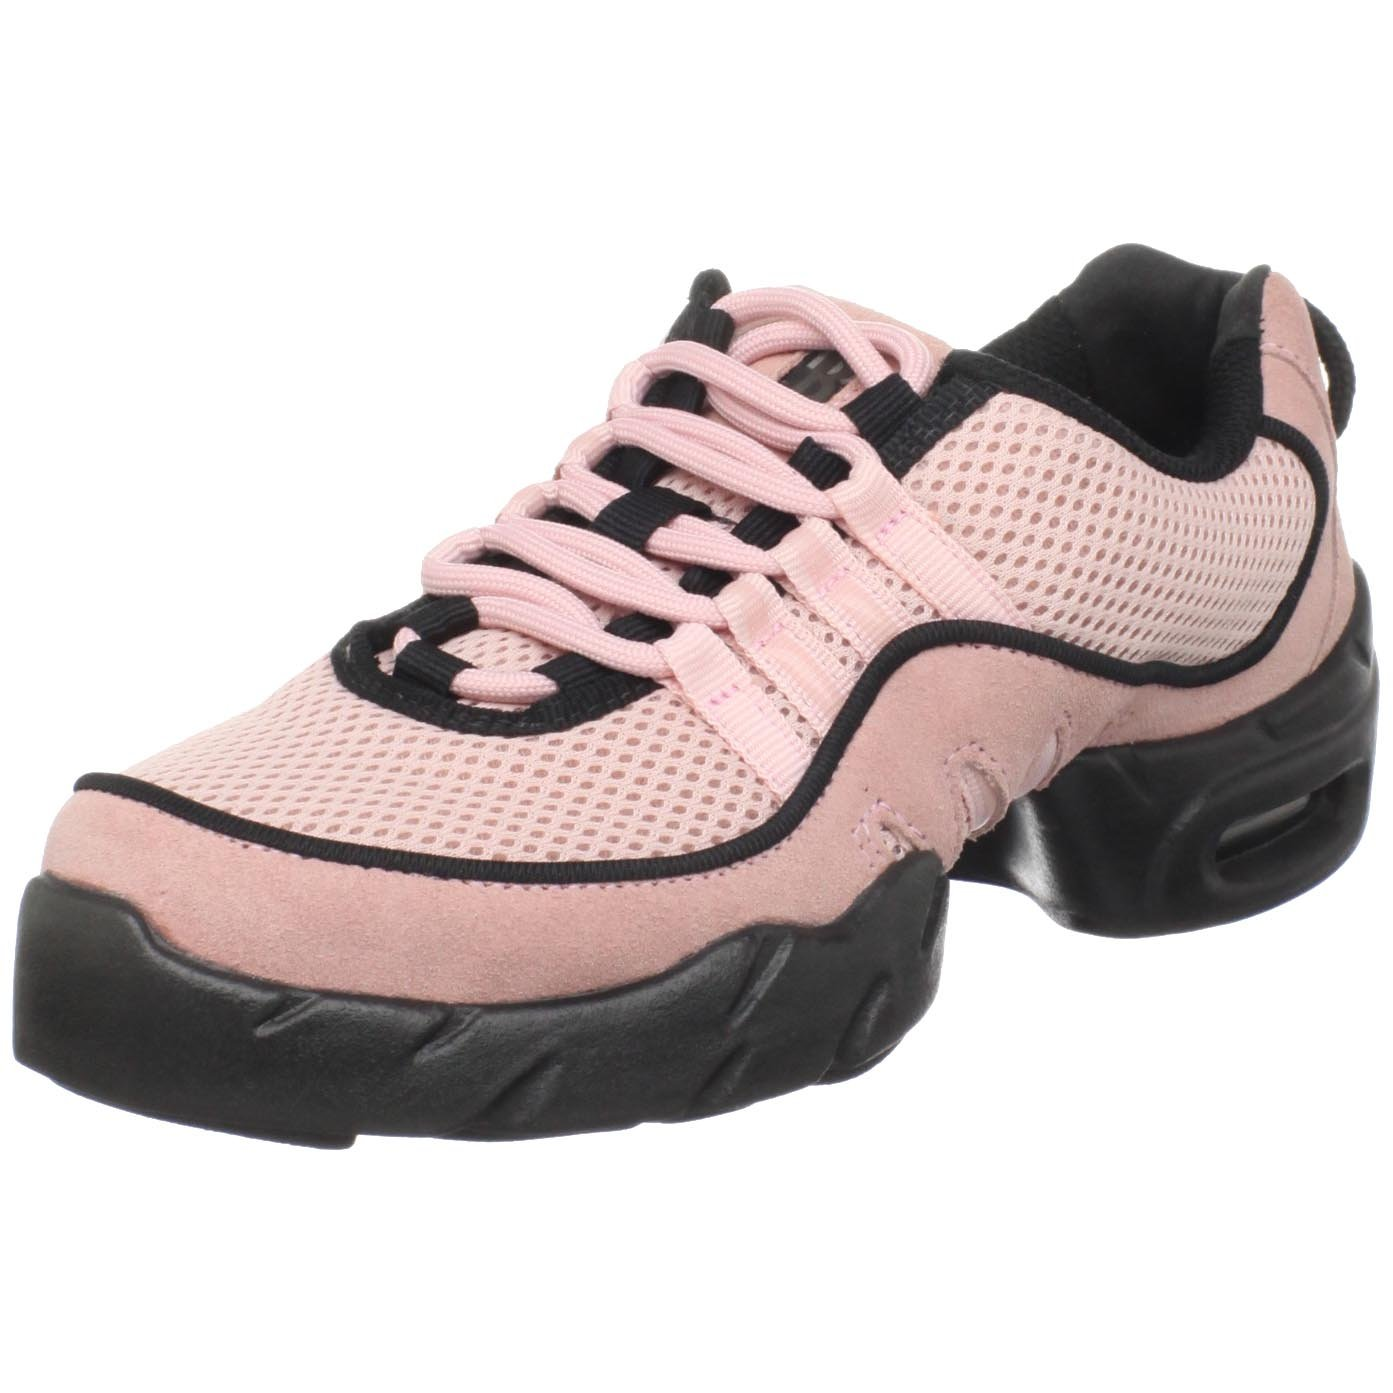 Bloch Dance Women's Boost Mesh DRT Split Sole Dance Sneaker B0041IXKHM 8.5 X(Medium) US|Pink